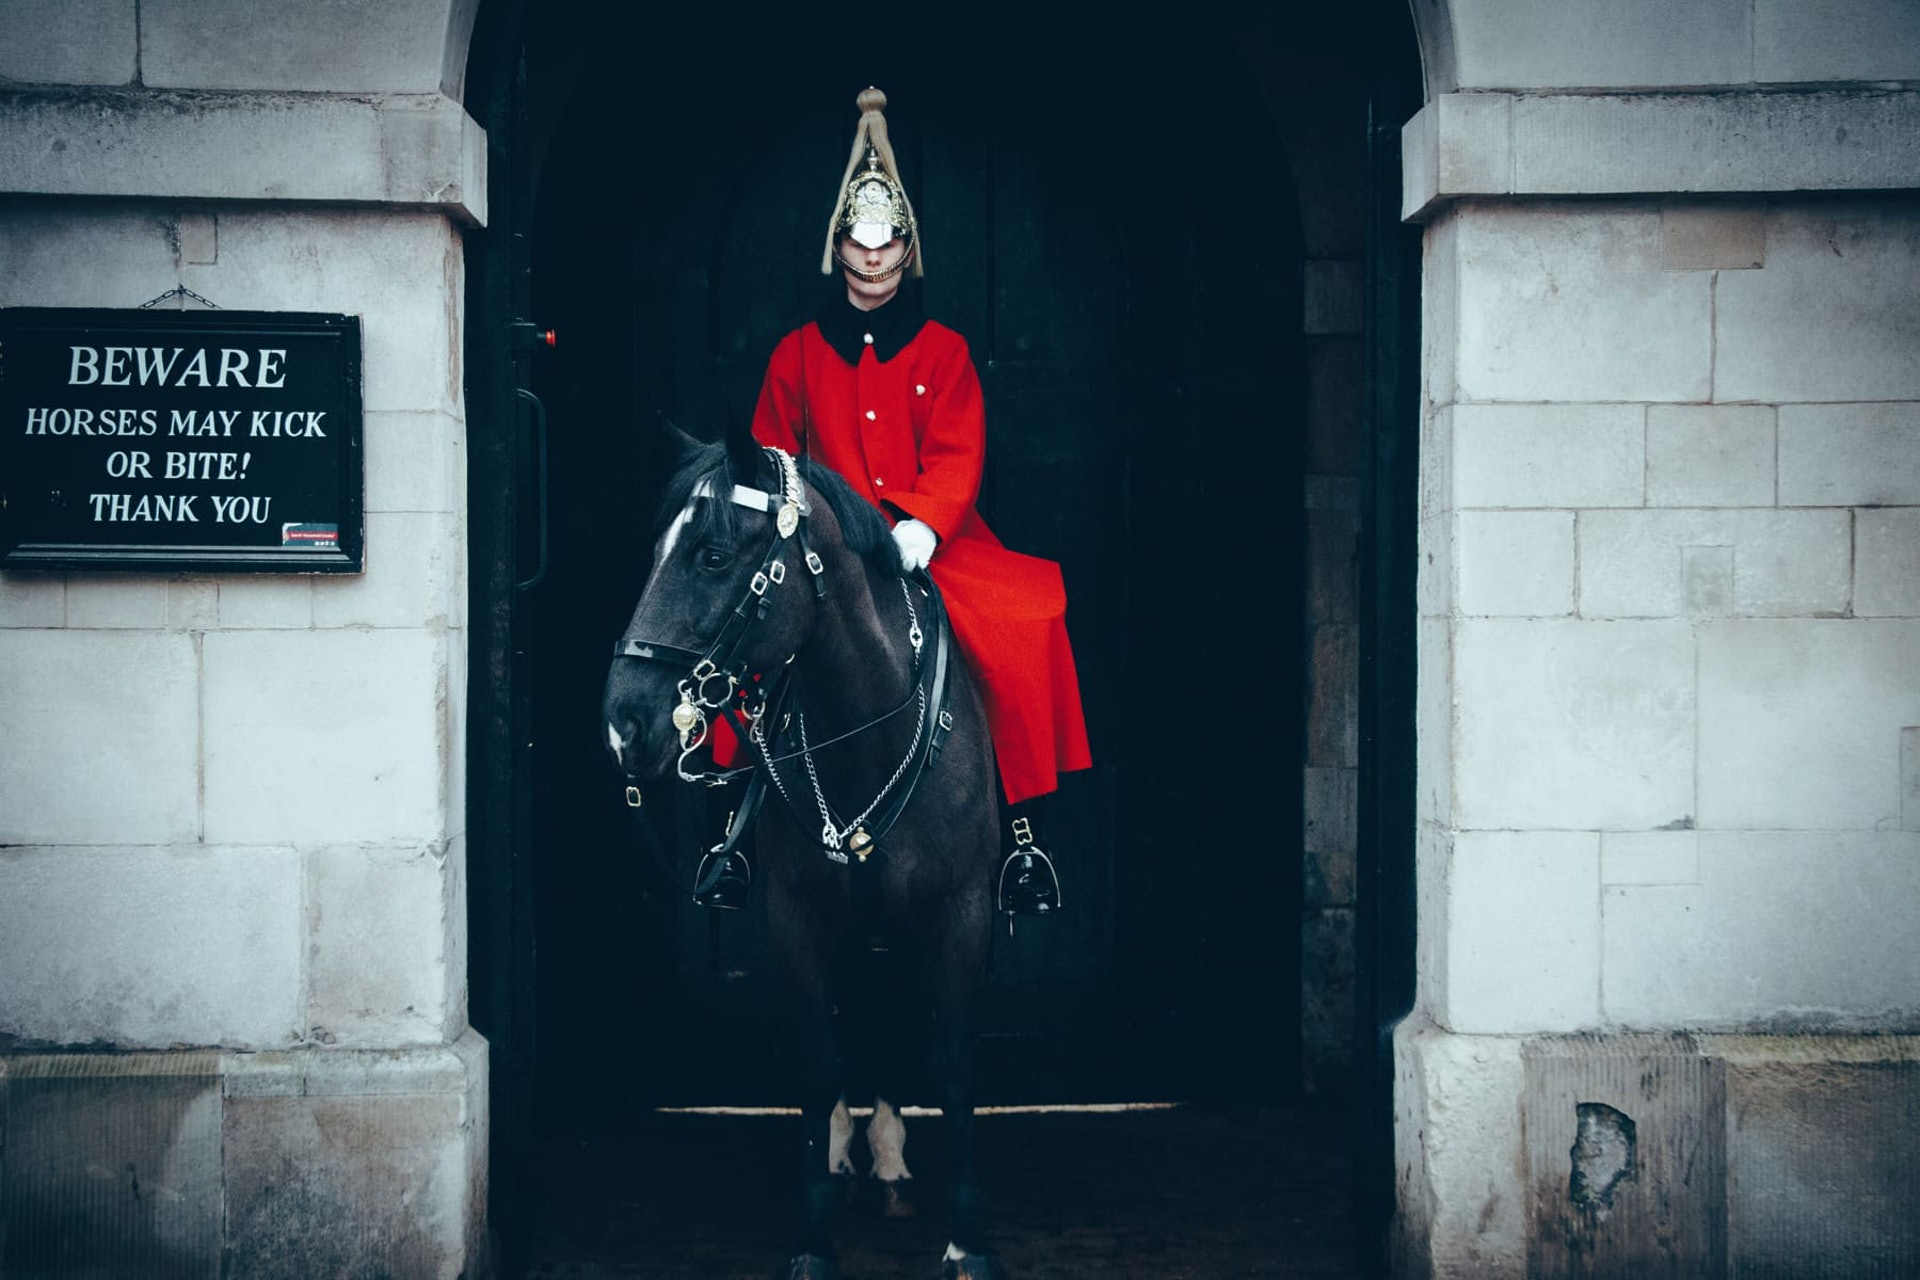 Soldier in red uniform on horse, London